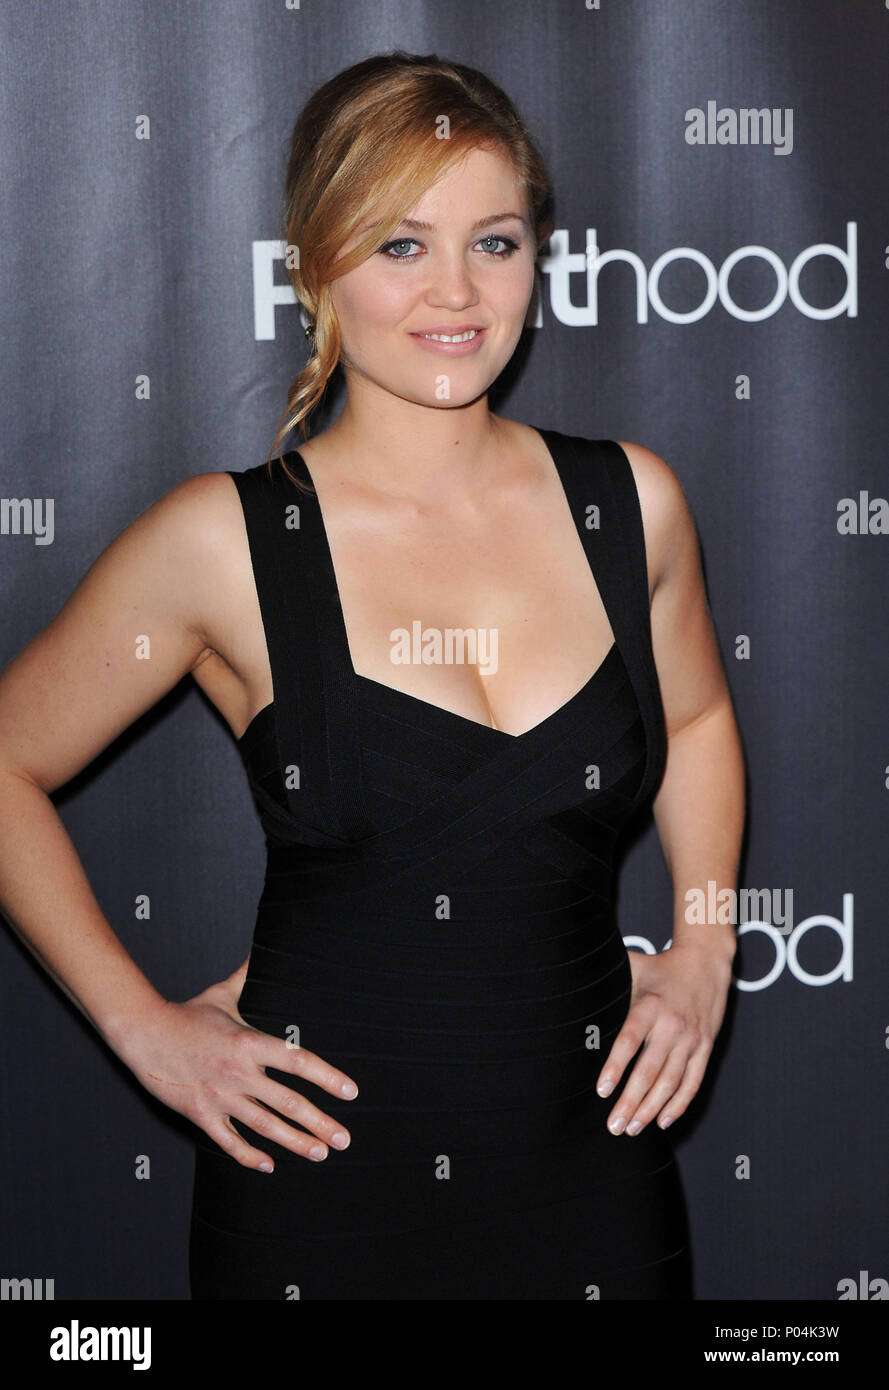 Celebrity Erika Christensen nude (71 photo), Pussy, Fappening, Selfie, braless 2006